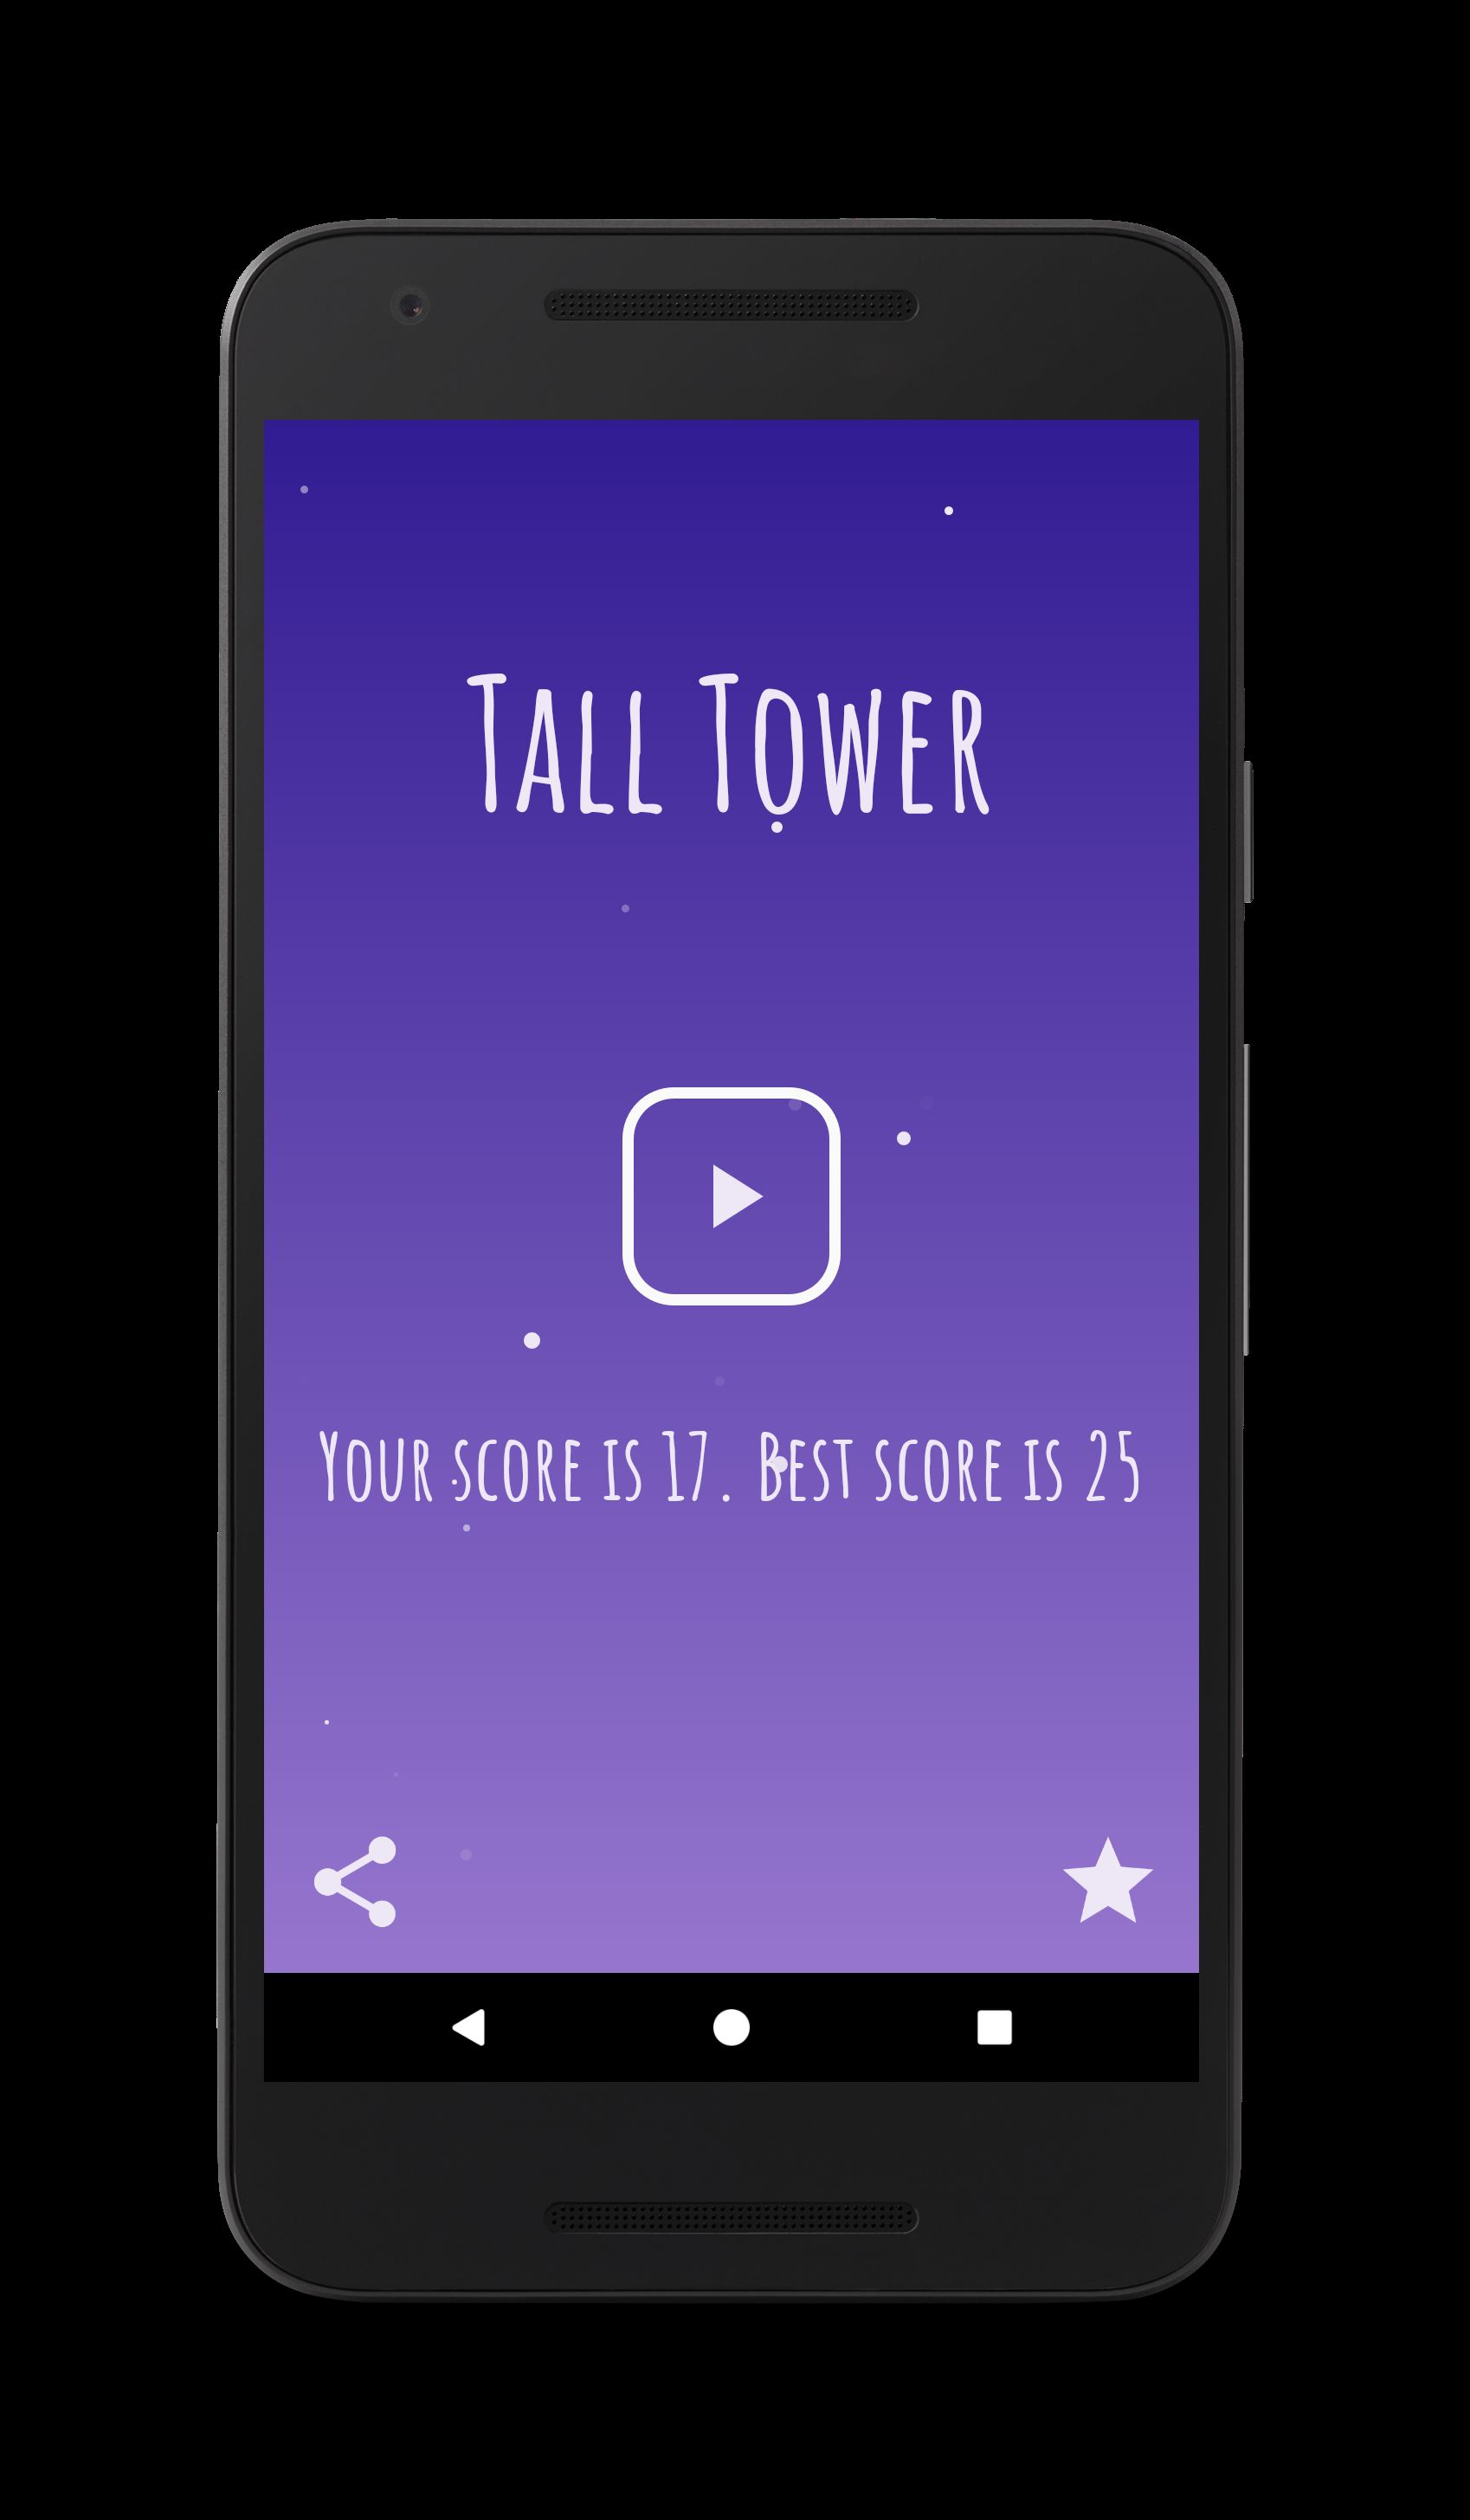 Tall Tower - Android Game Source Code Screenshot 3